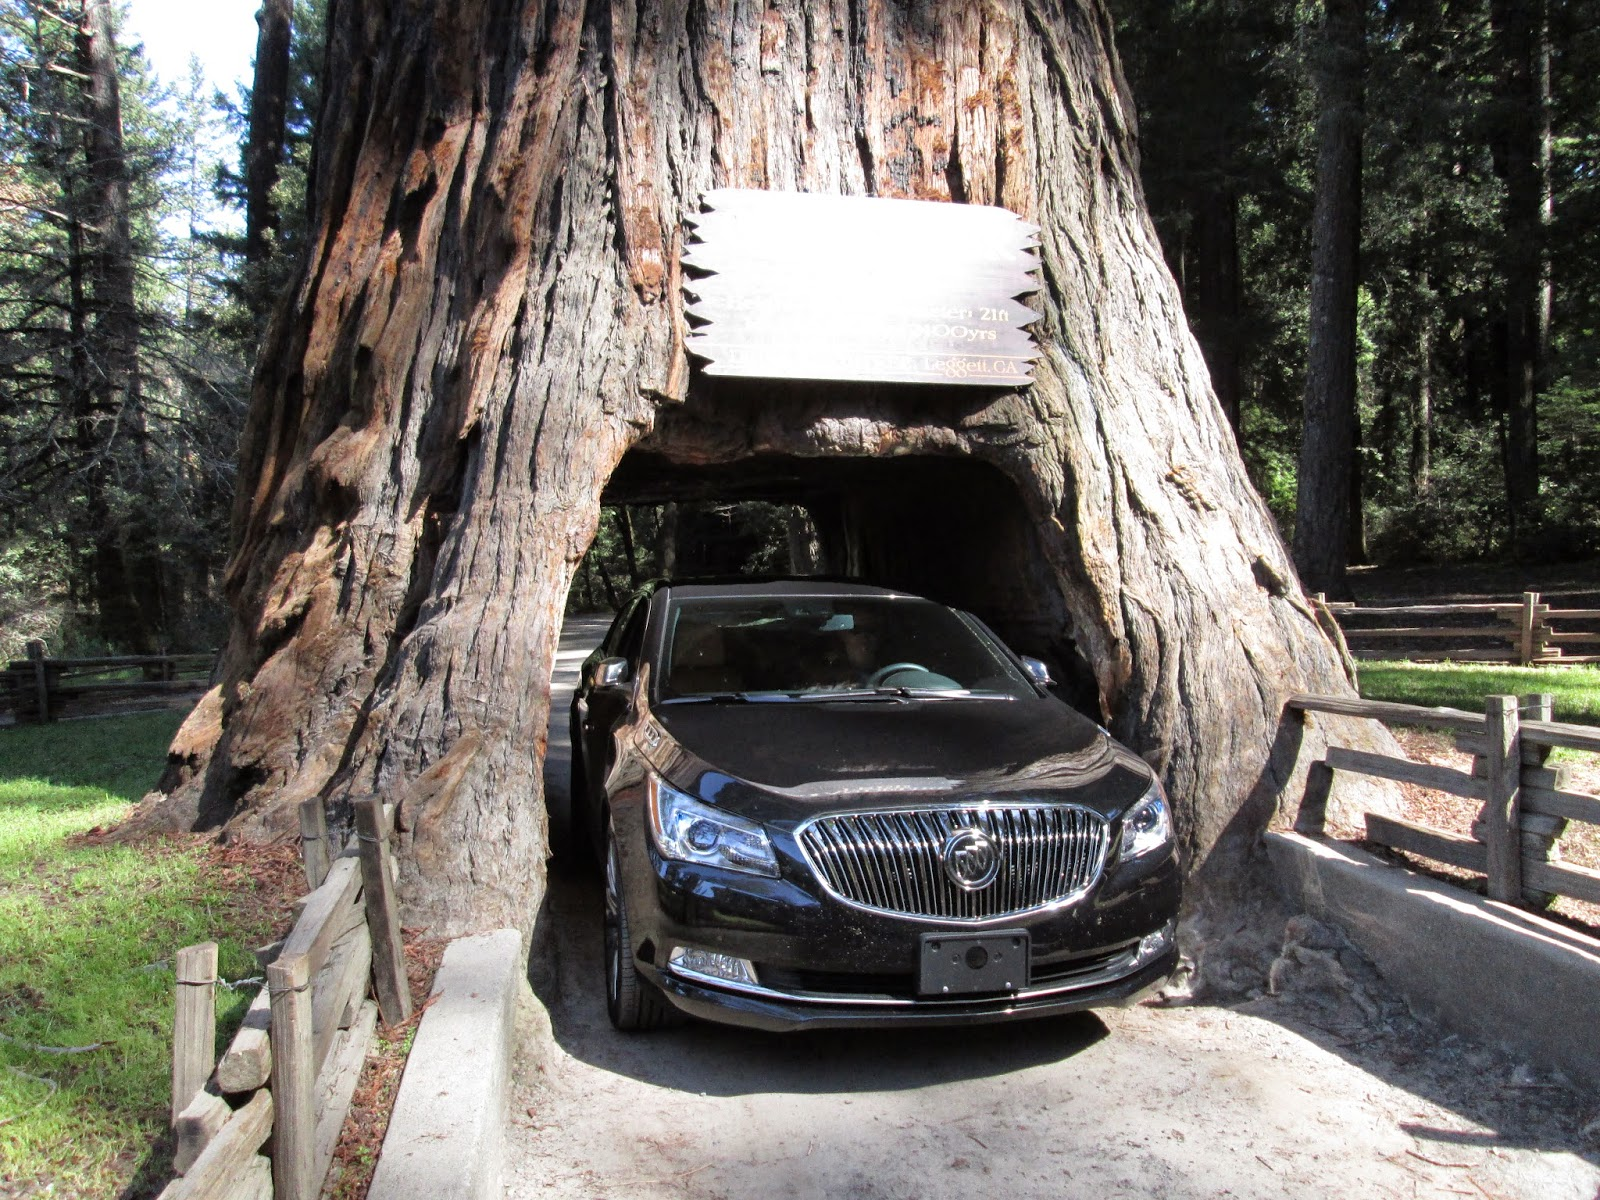 2015 Buick LaCrosse inside Chandelier Tree, Leggett, CA